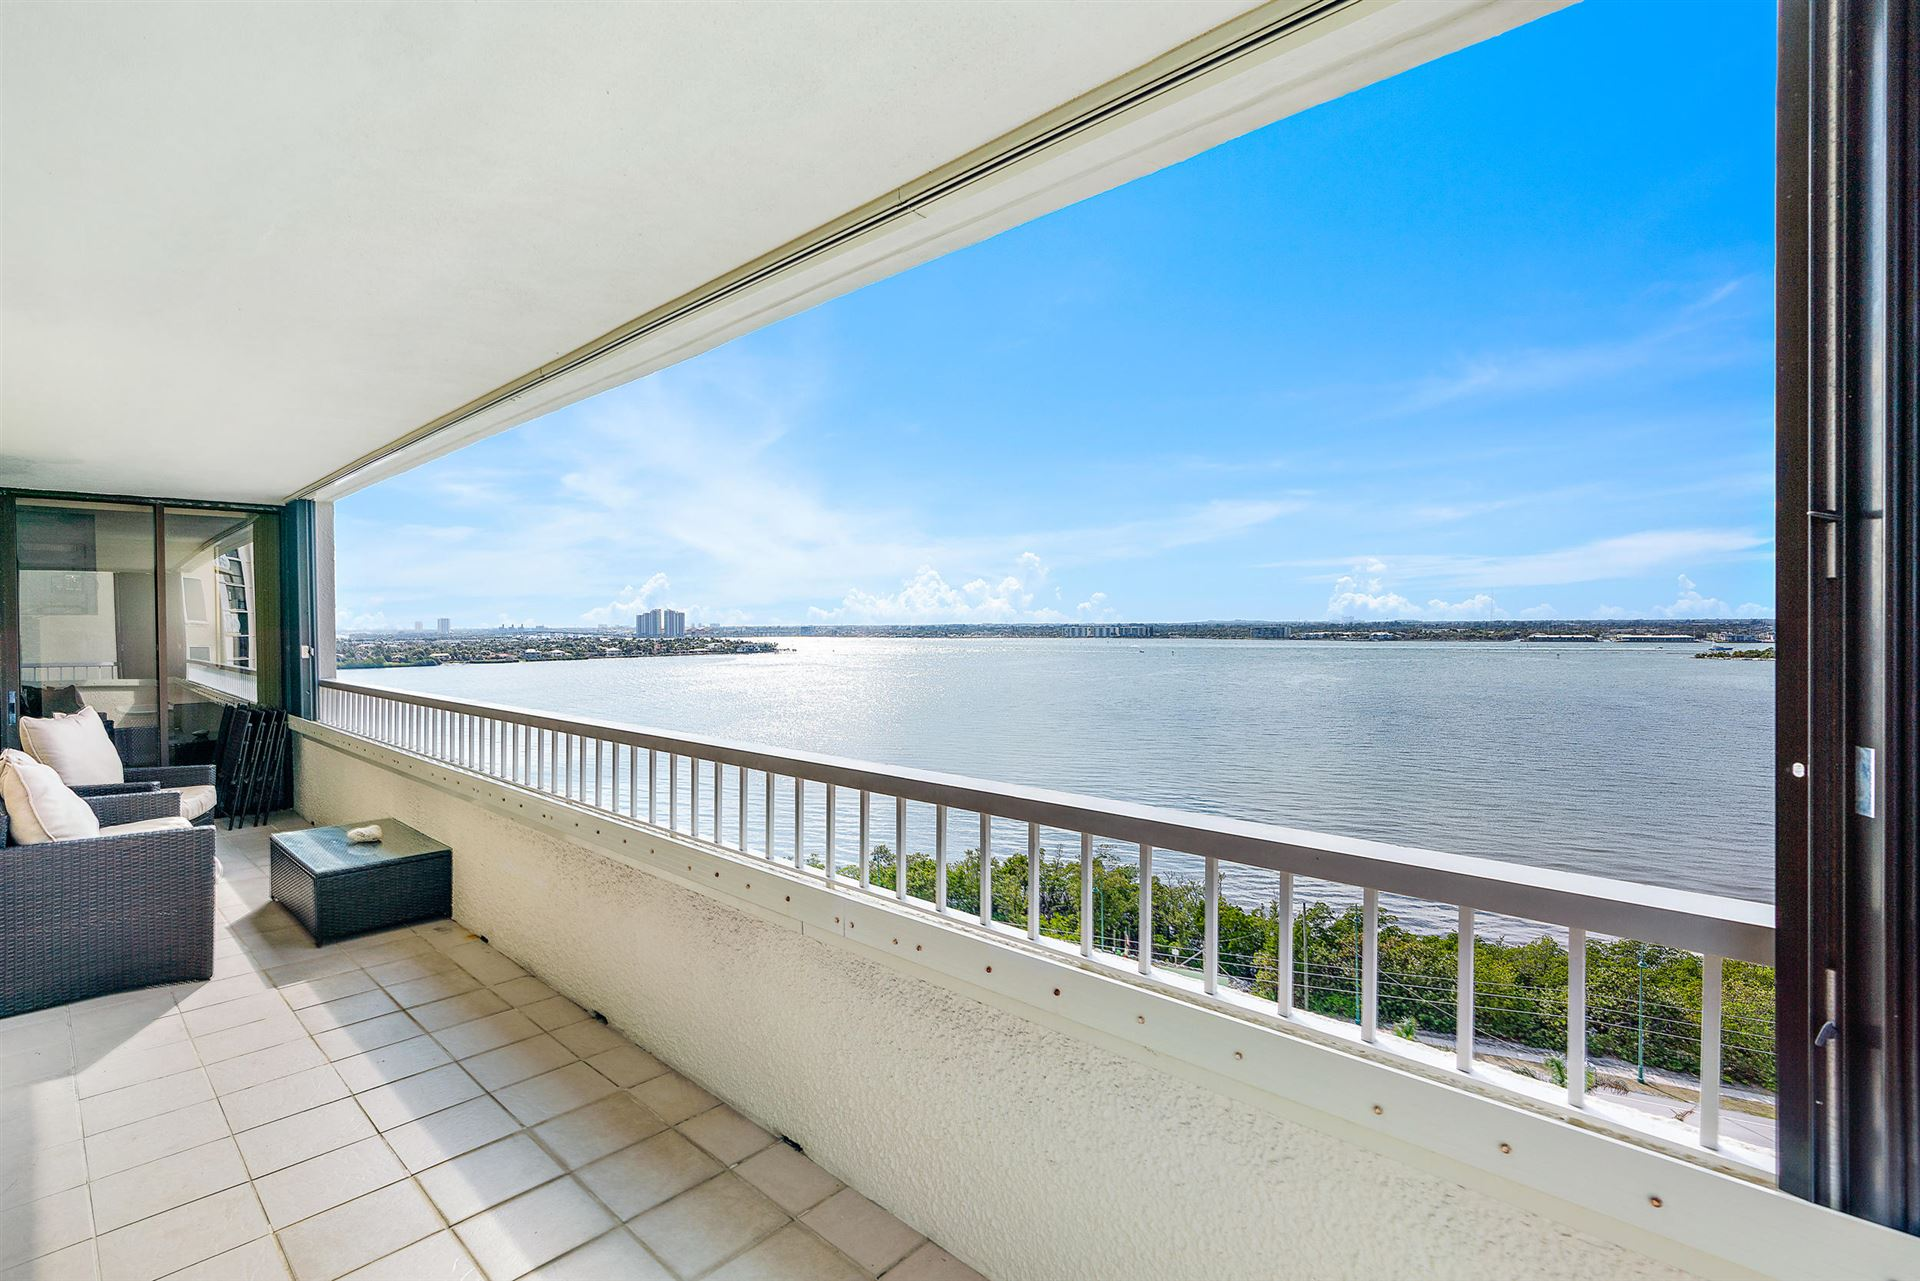 Photo of 5280 N Ocean Drive #10-D, Singer Island, FL 33404 (MLS # RX-10687856)